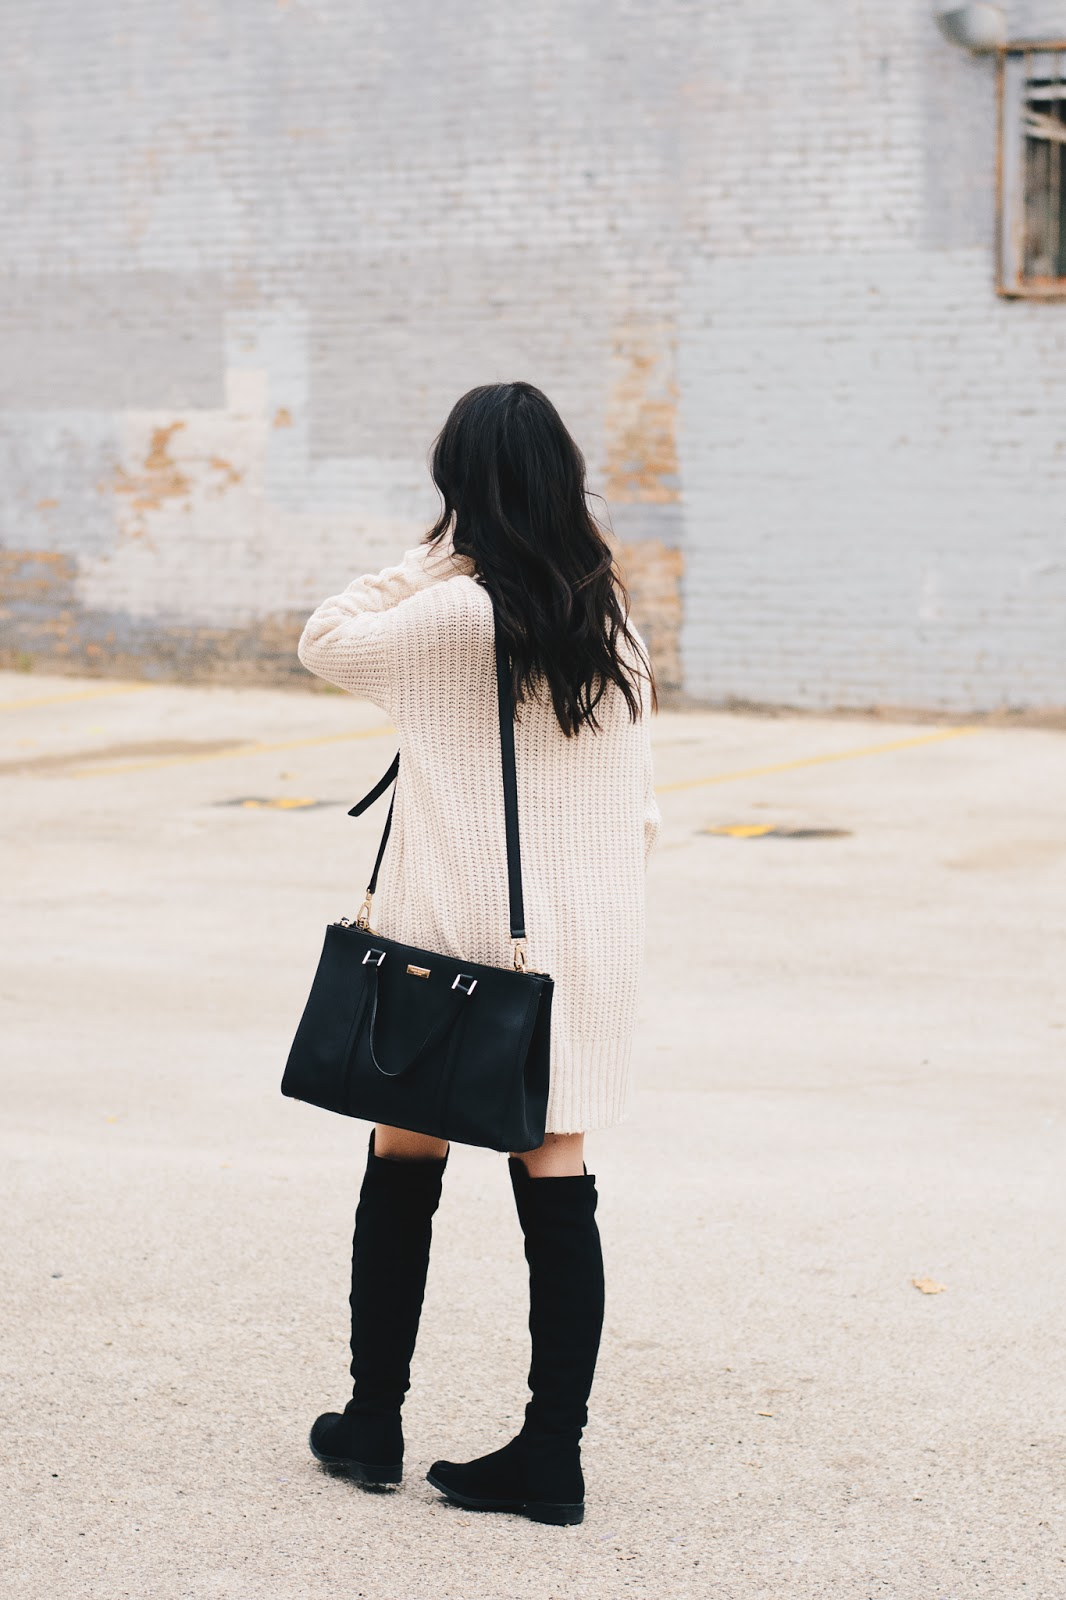 Chunky Knit Cardigan, Kate Spade Bag and OTK Boots for Fall Style